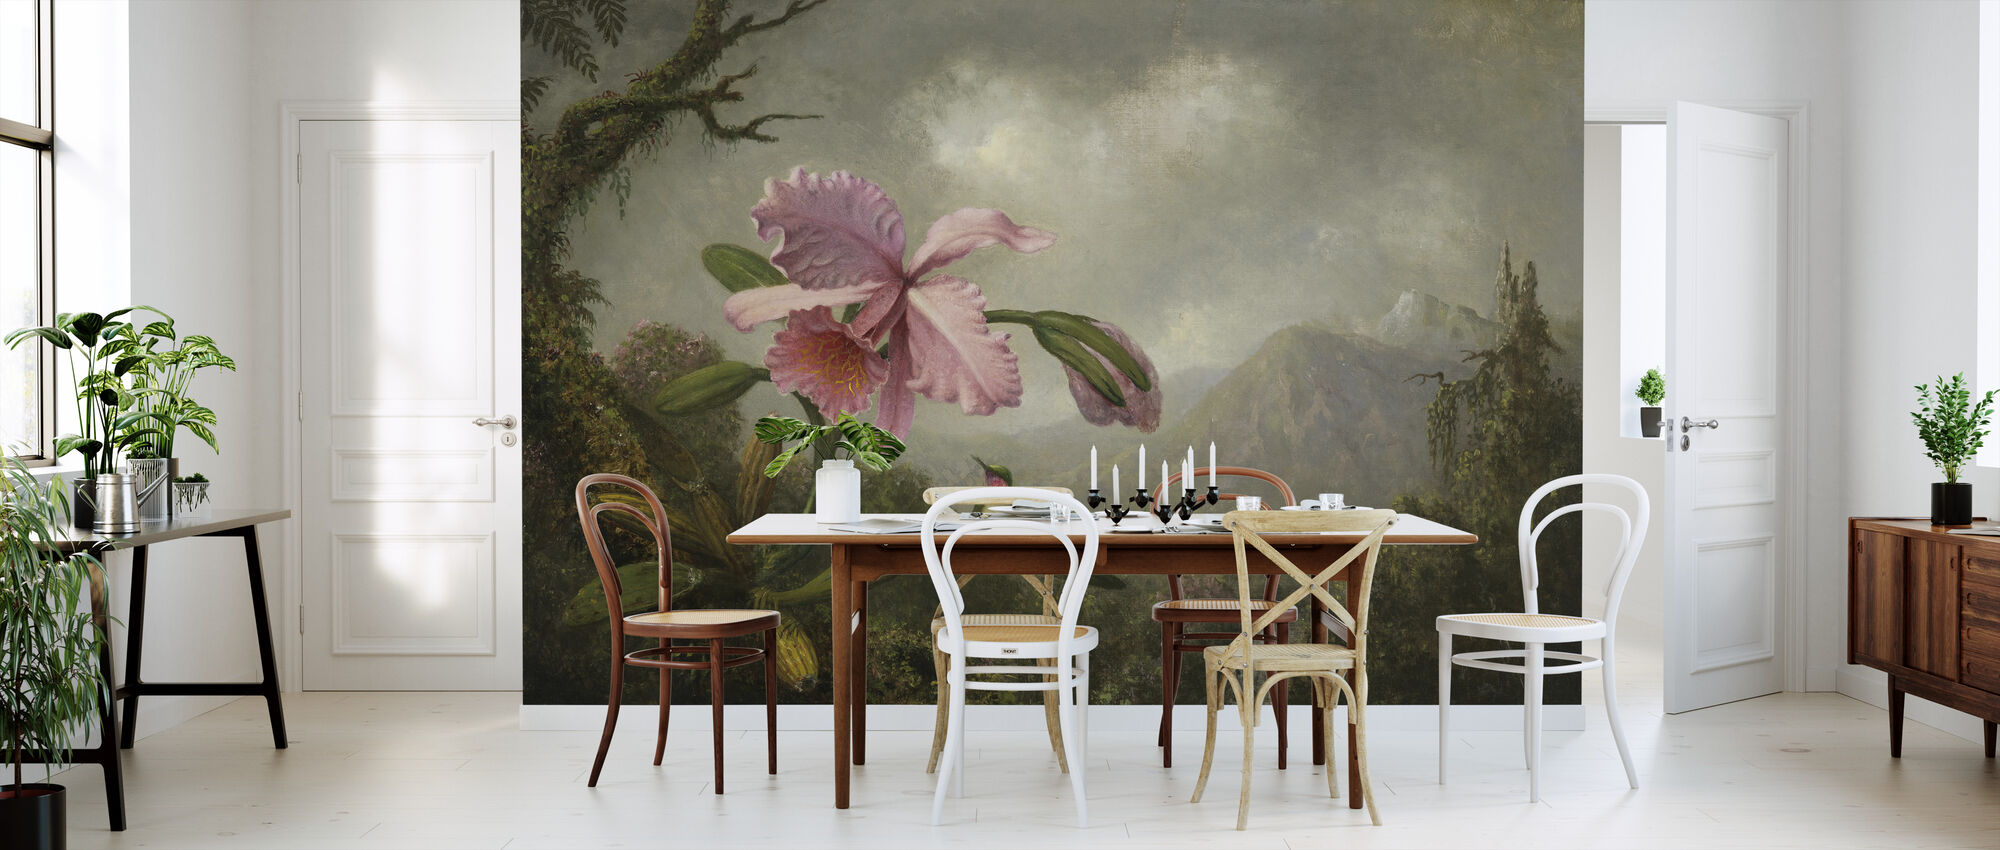 Orchid and Hummingbird - Martin Johnson Heade - Wallpaper - Kitchen